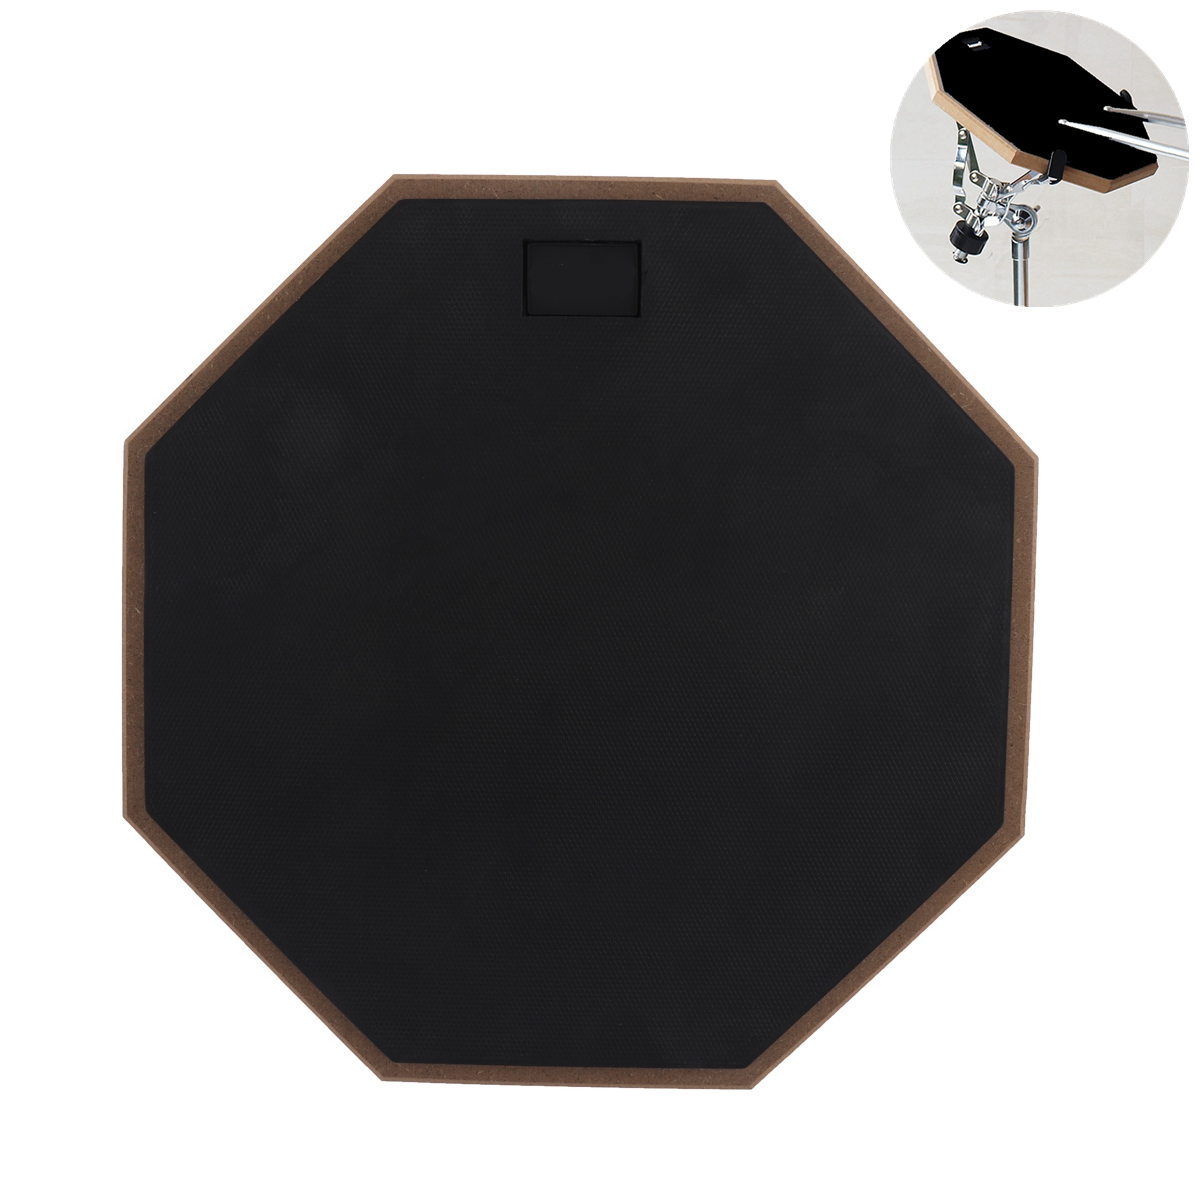 12 Inch Black Rubber Wooden Dumb Drum Practice Training Pad for Jazz Exercise